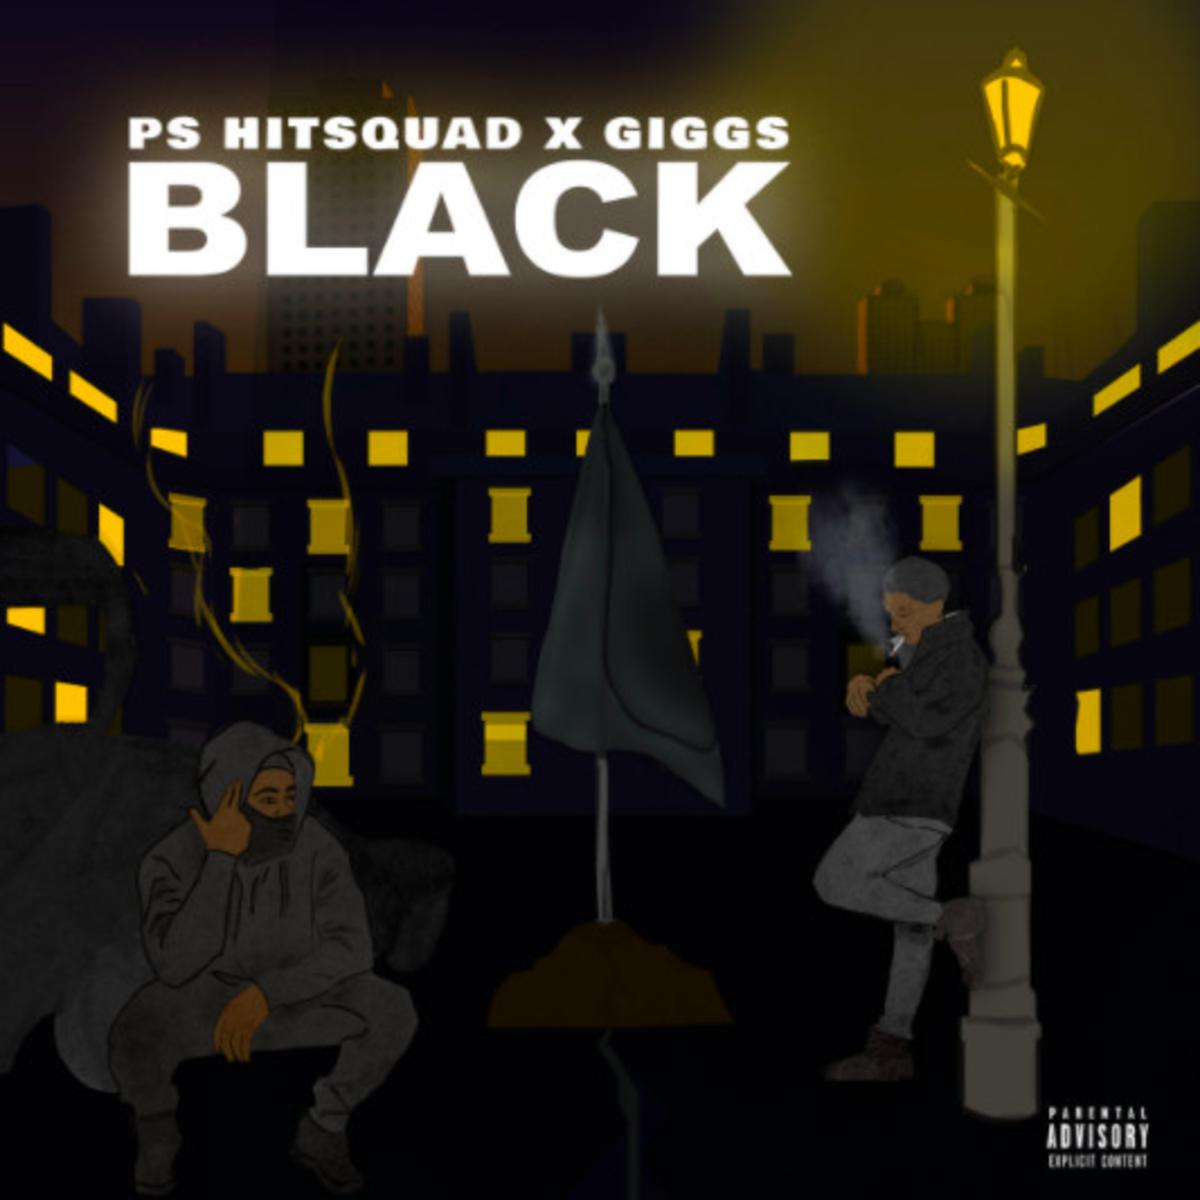 MP3: PS Hitsquad - Black Ft. Giggs